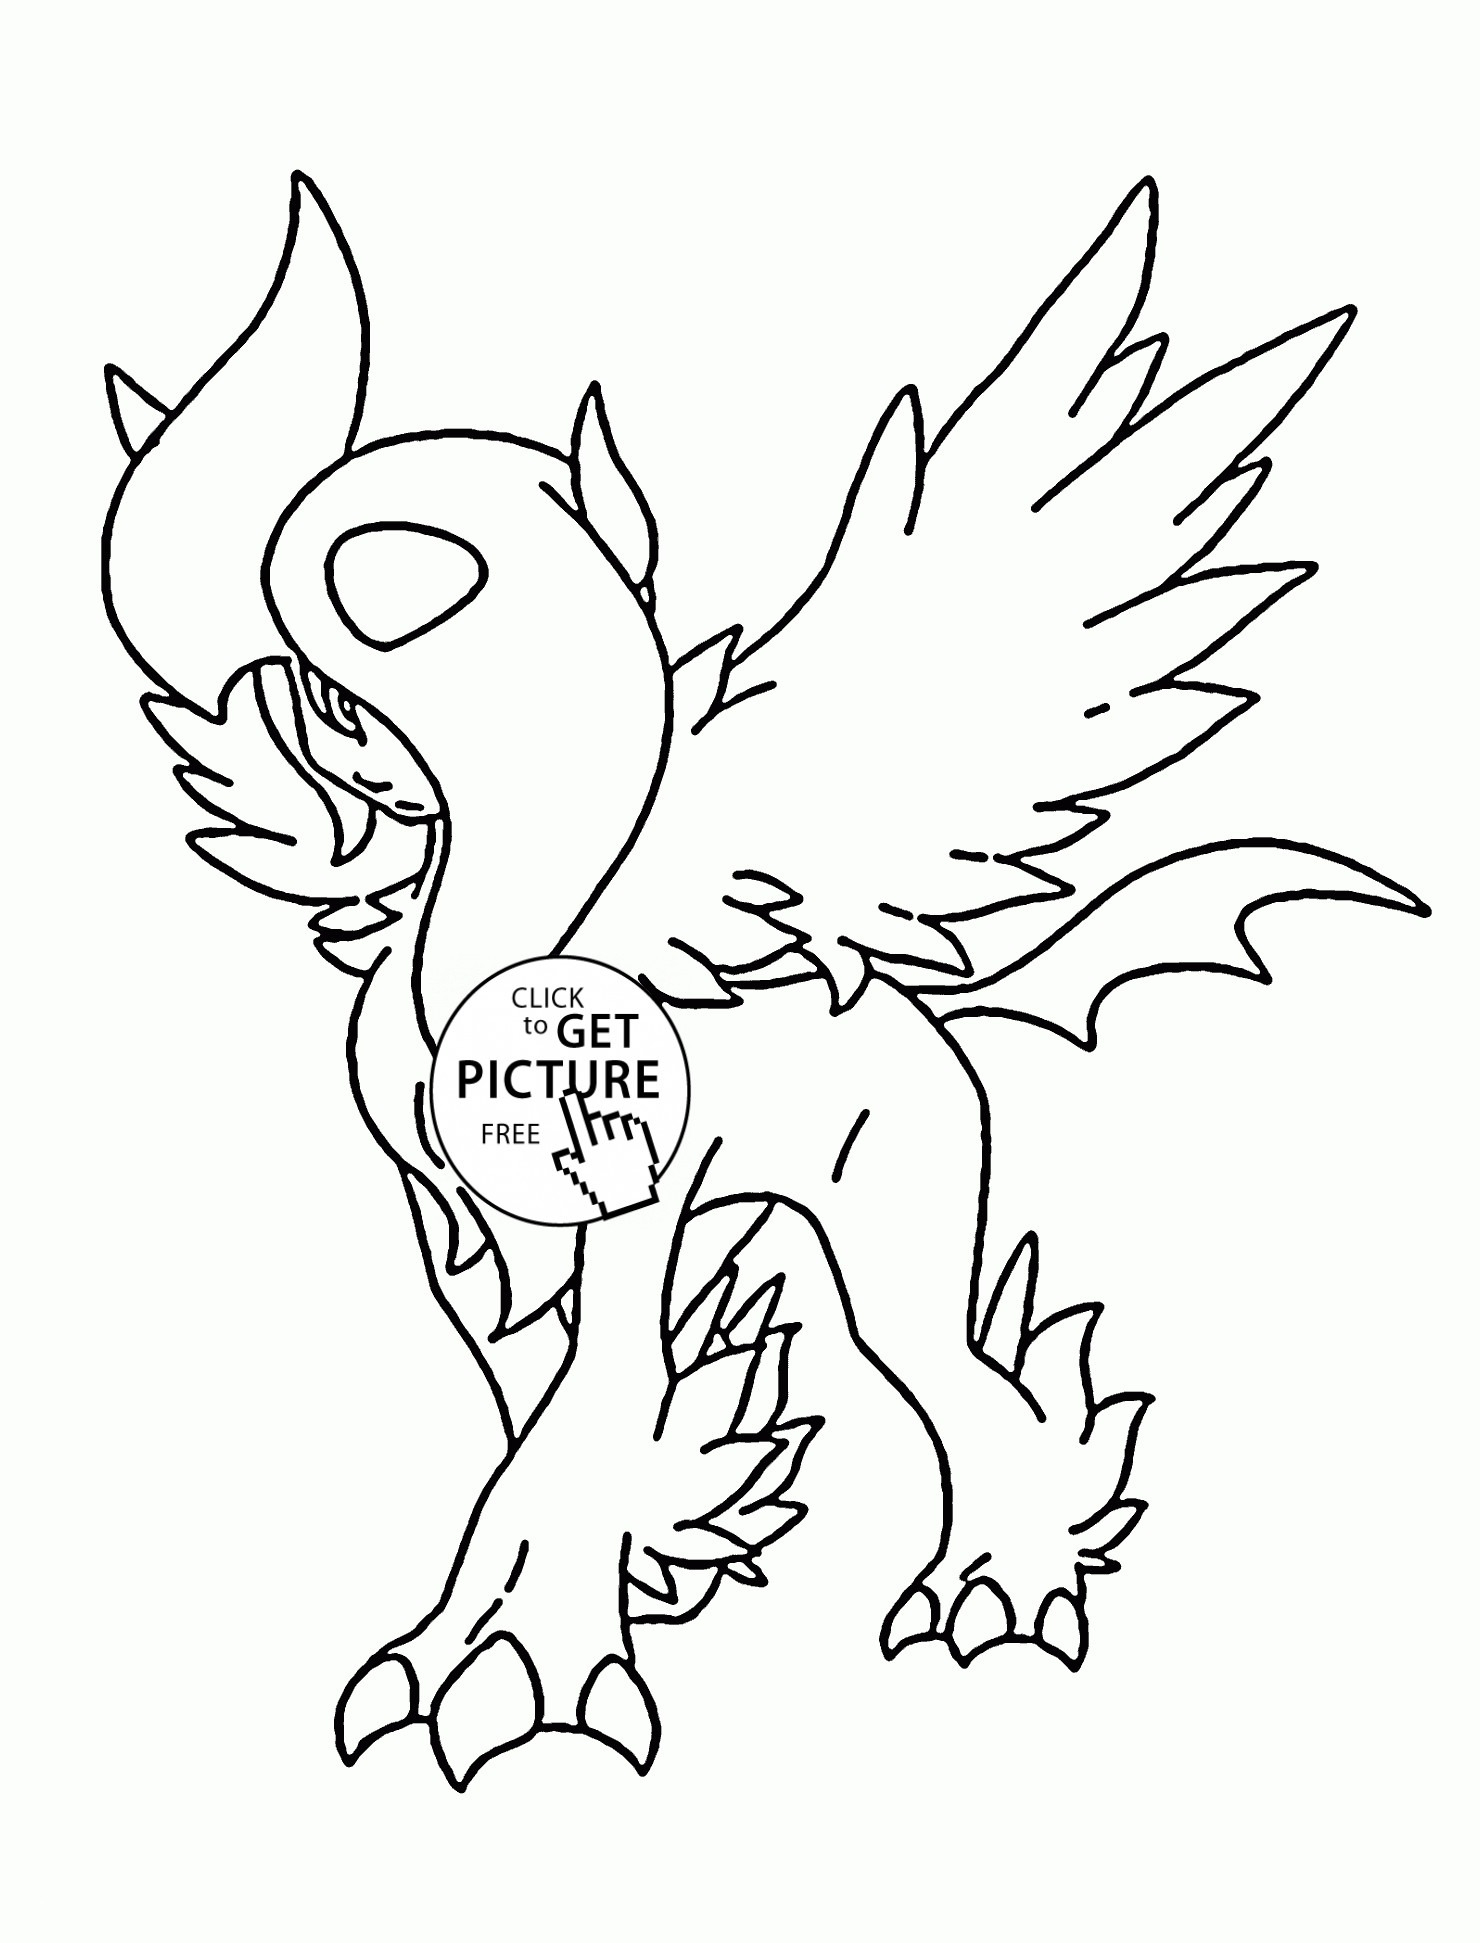 29 Pokemon Coloring Pages Charizard Download Coloring Sheets